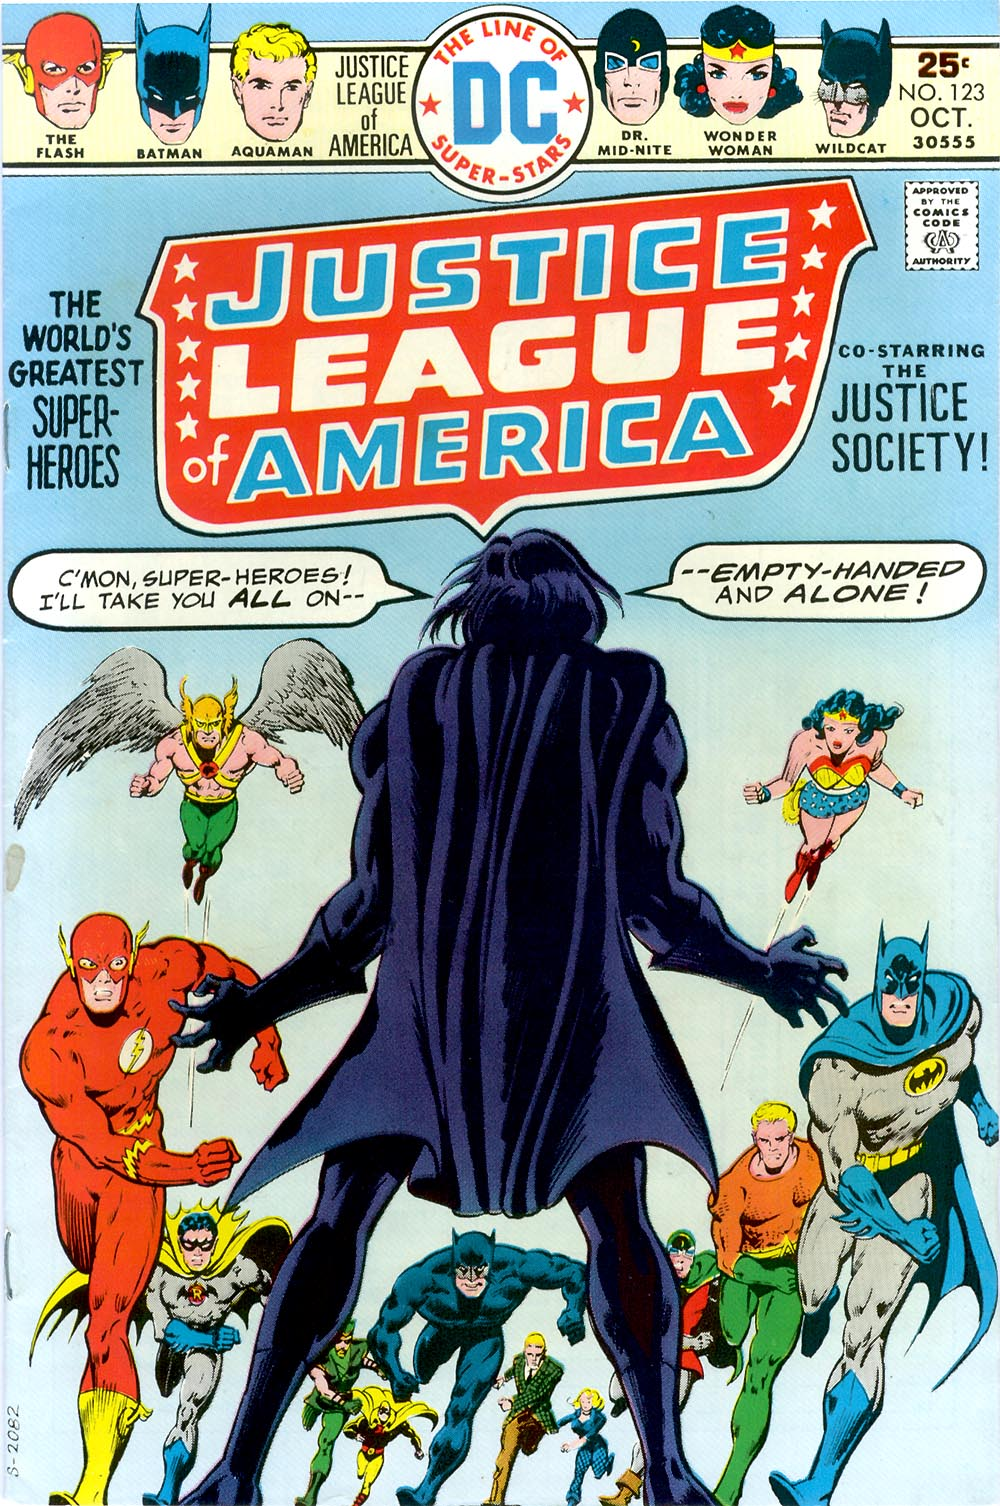 Justice League of America (1960) #123, written by Elliot S Maggin & Cary Bates. Cover by Dick Dillin.